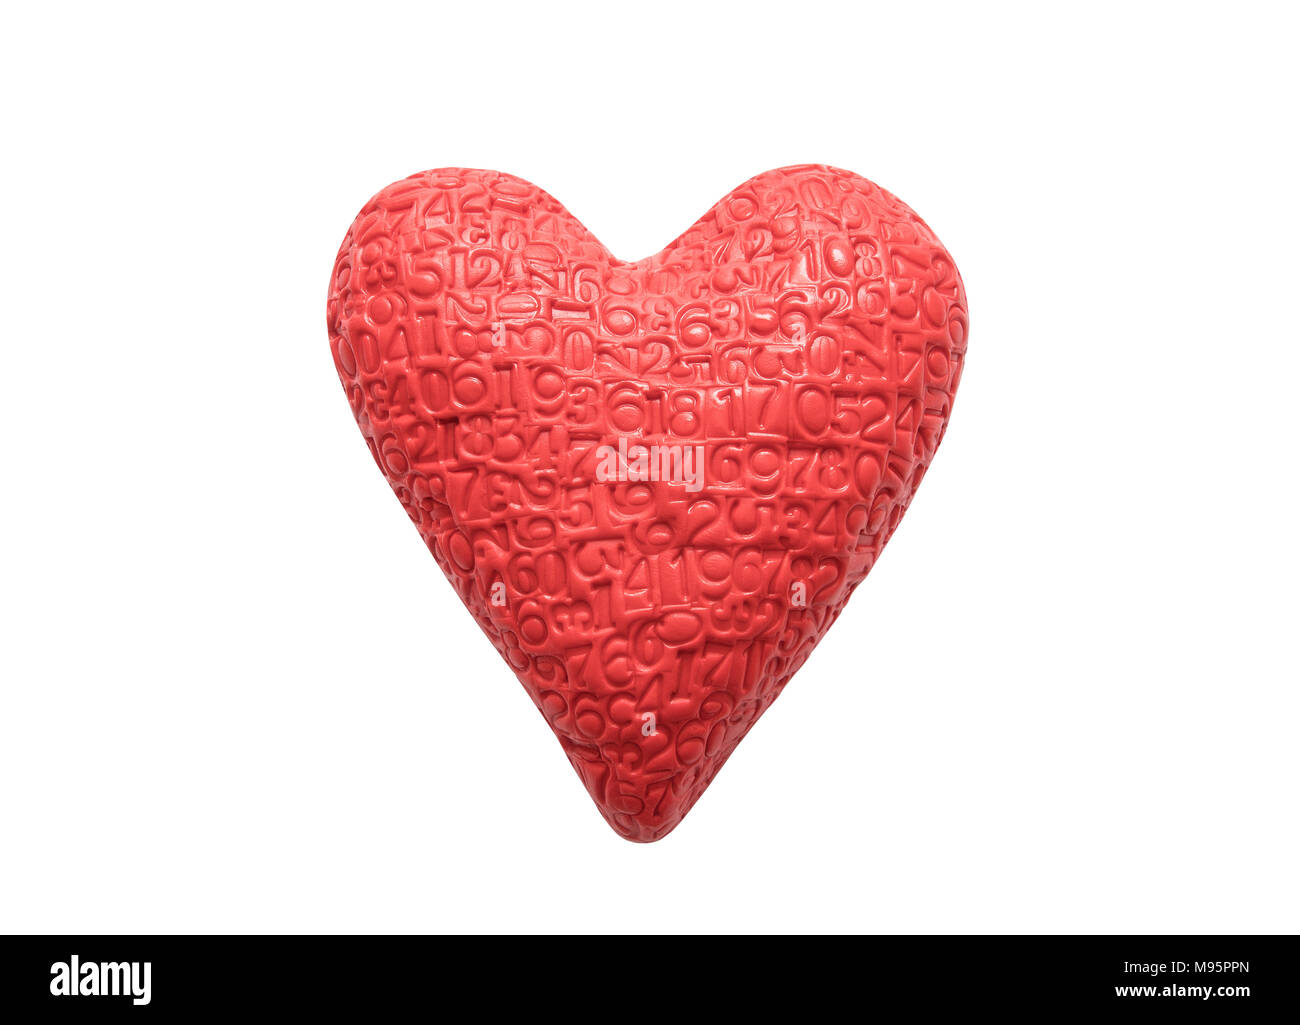 Red heart with imprinted digits isolated on white background - Stock Image